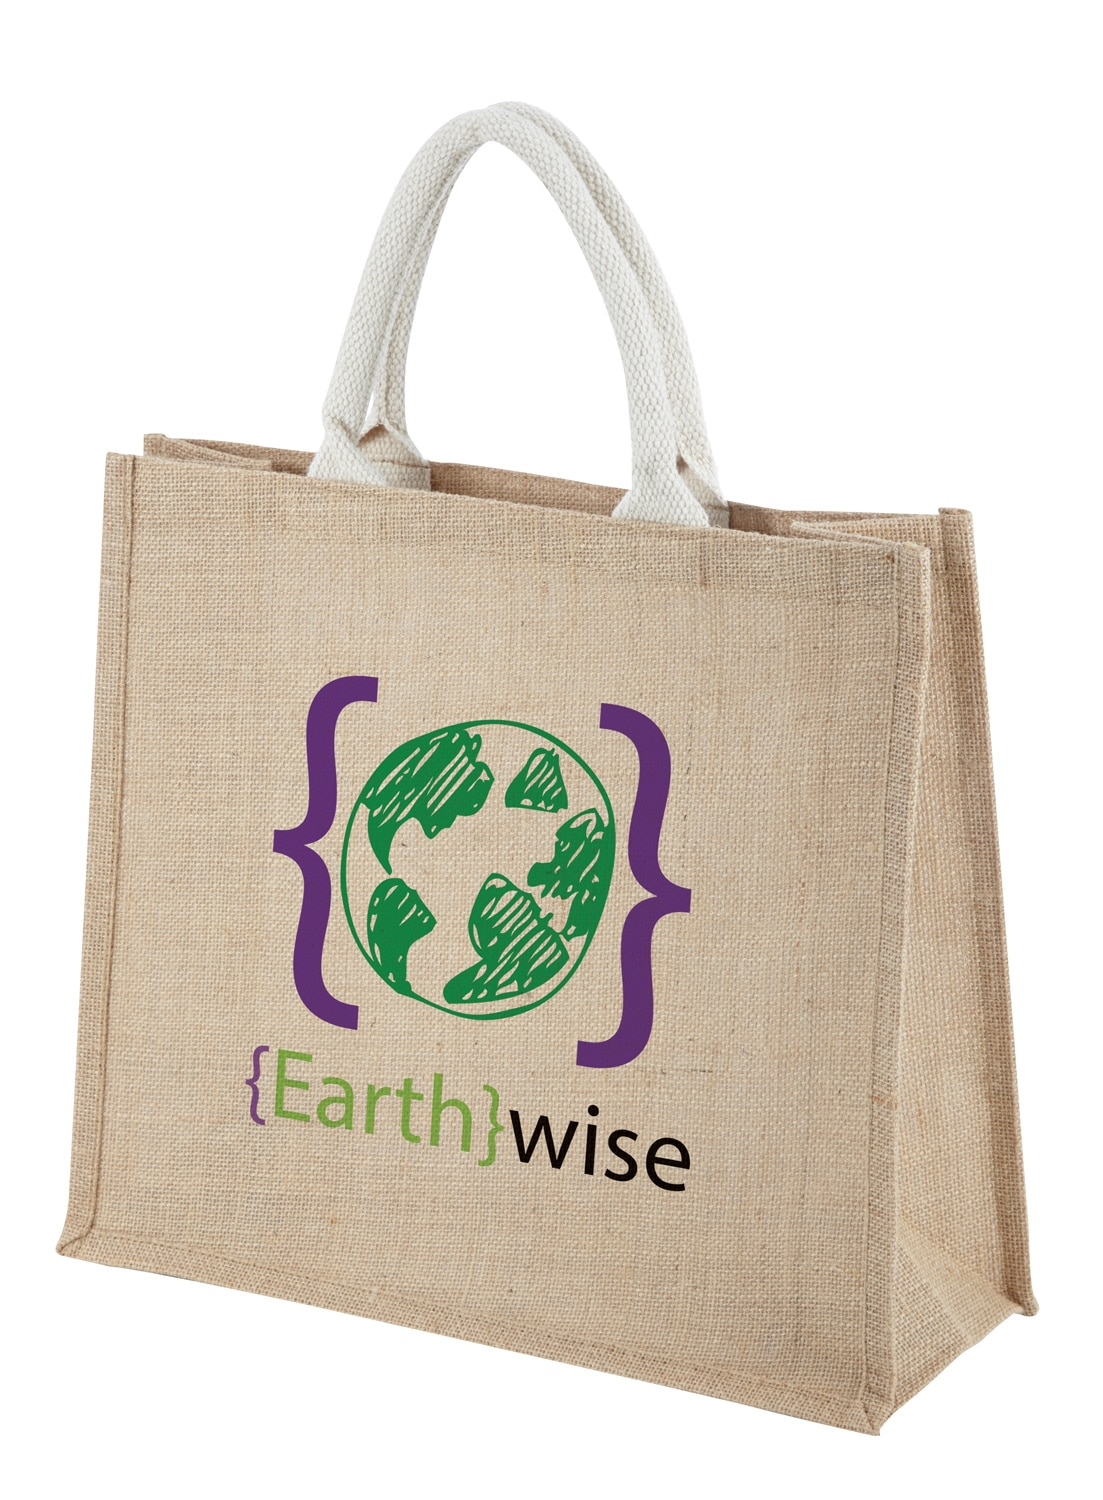 Promotional Jute Bags for Life